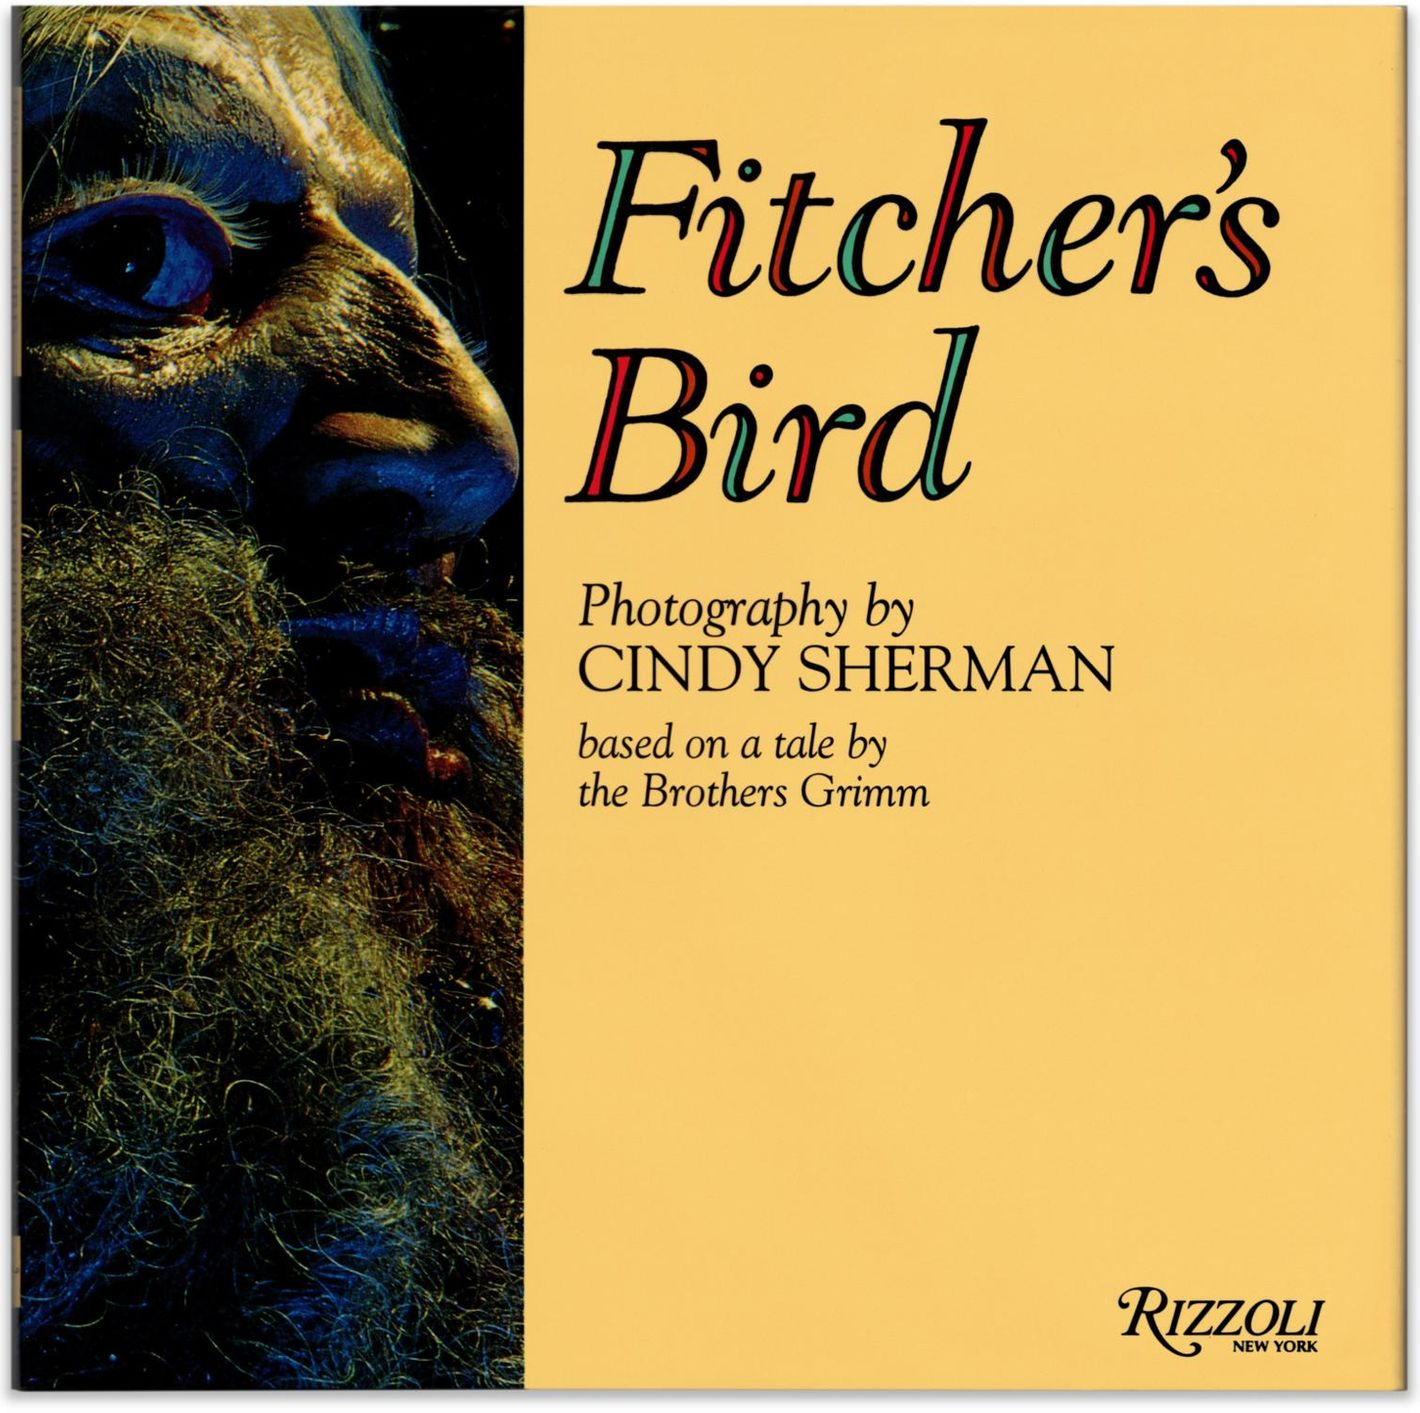 Fitcher's Bird, photographs by Cindy Sherman